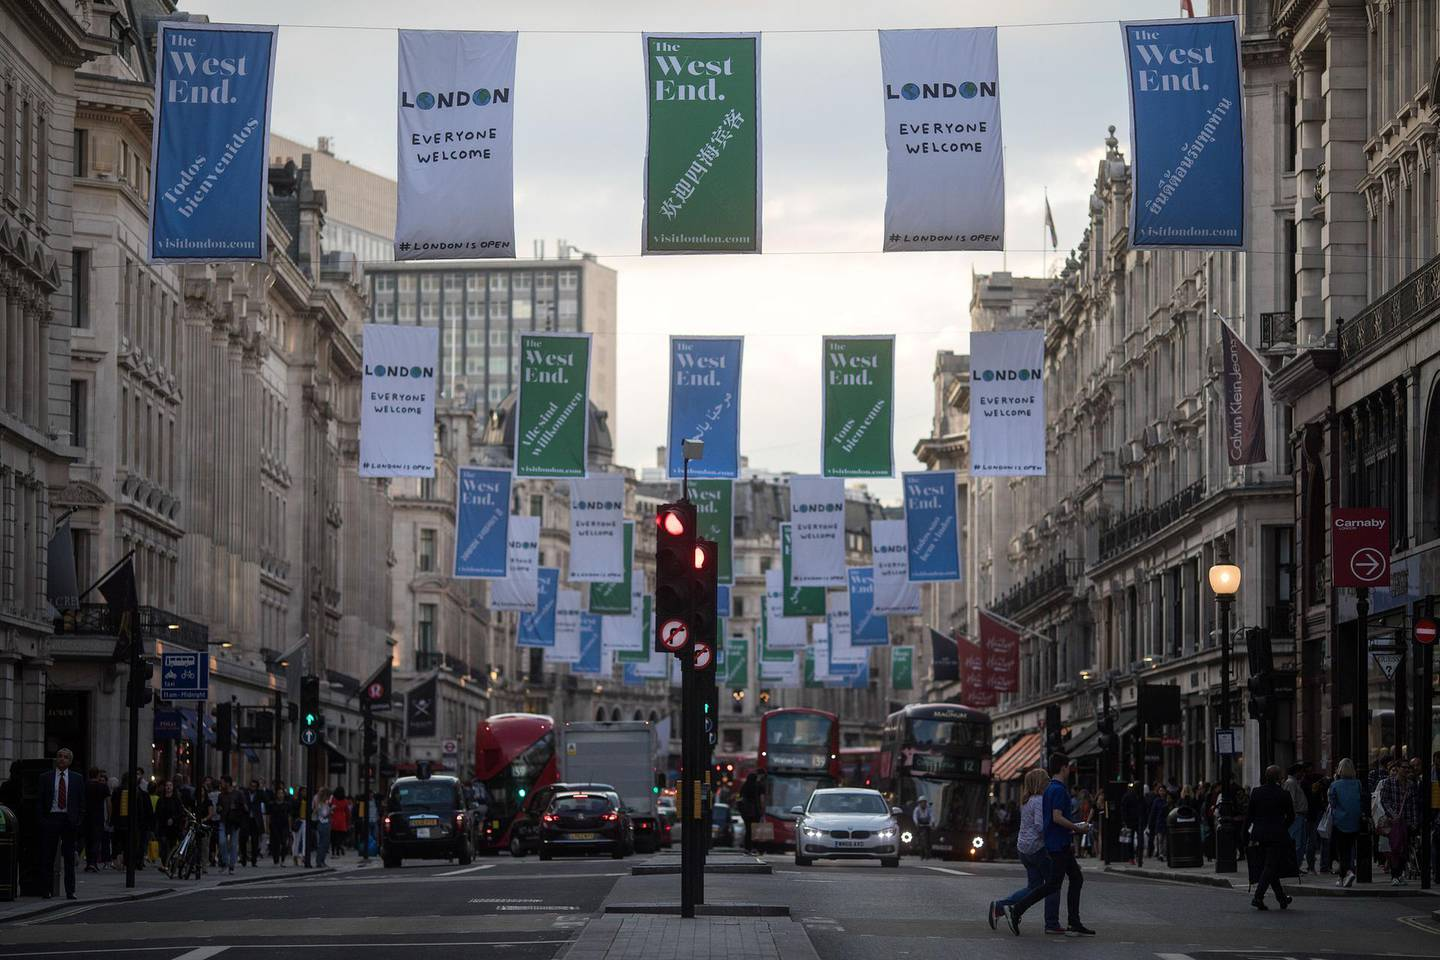 Banners advertising London's 'West End' shopping district hang above shoppers along Regent Street in central London, U.K., on Thursday, Aug. 31, 2017. U.K. consumer confidence staged a slight rebound from its lowest level since just after the Brexit vote. Photographer: Simon Dawson/Bloomberg